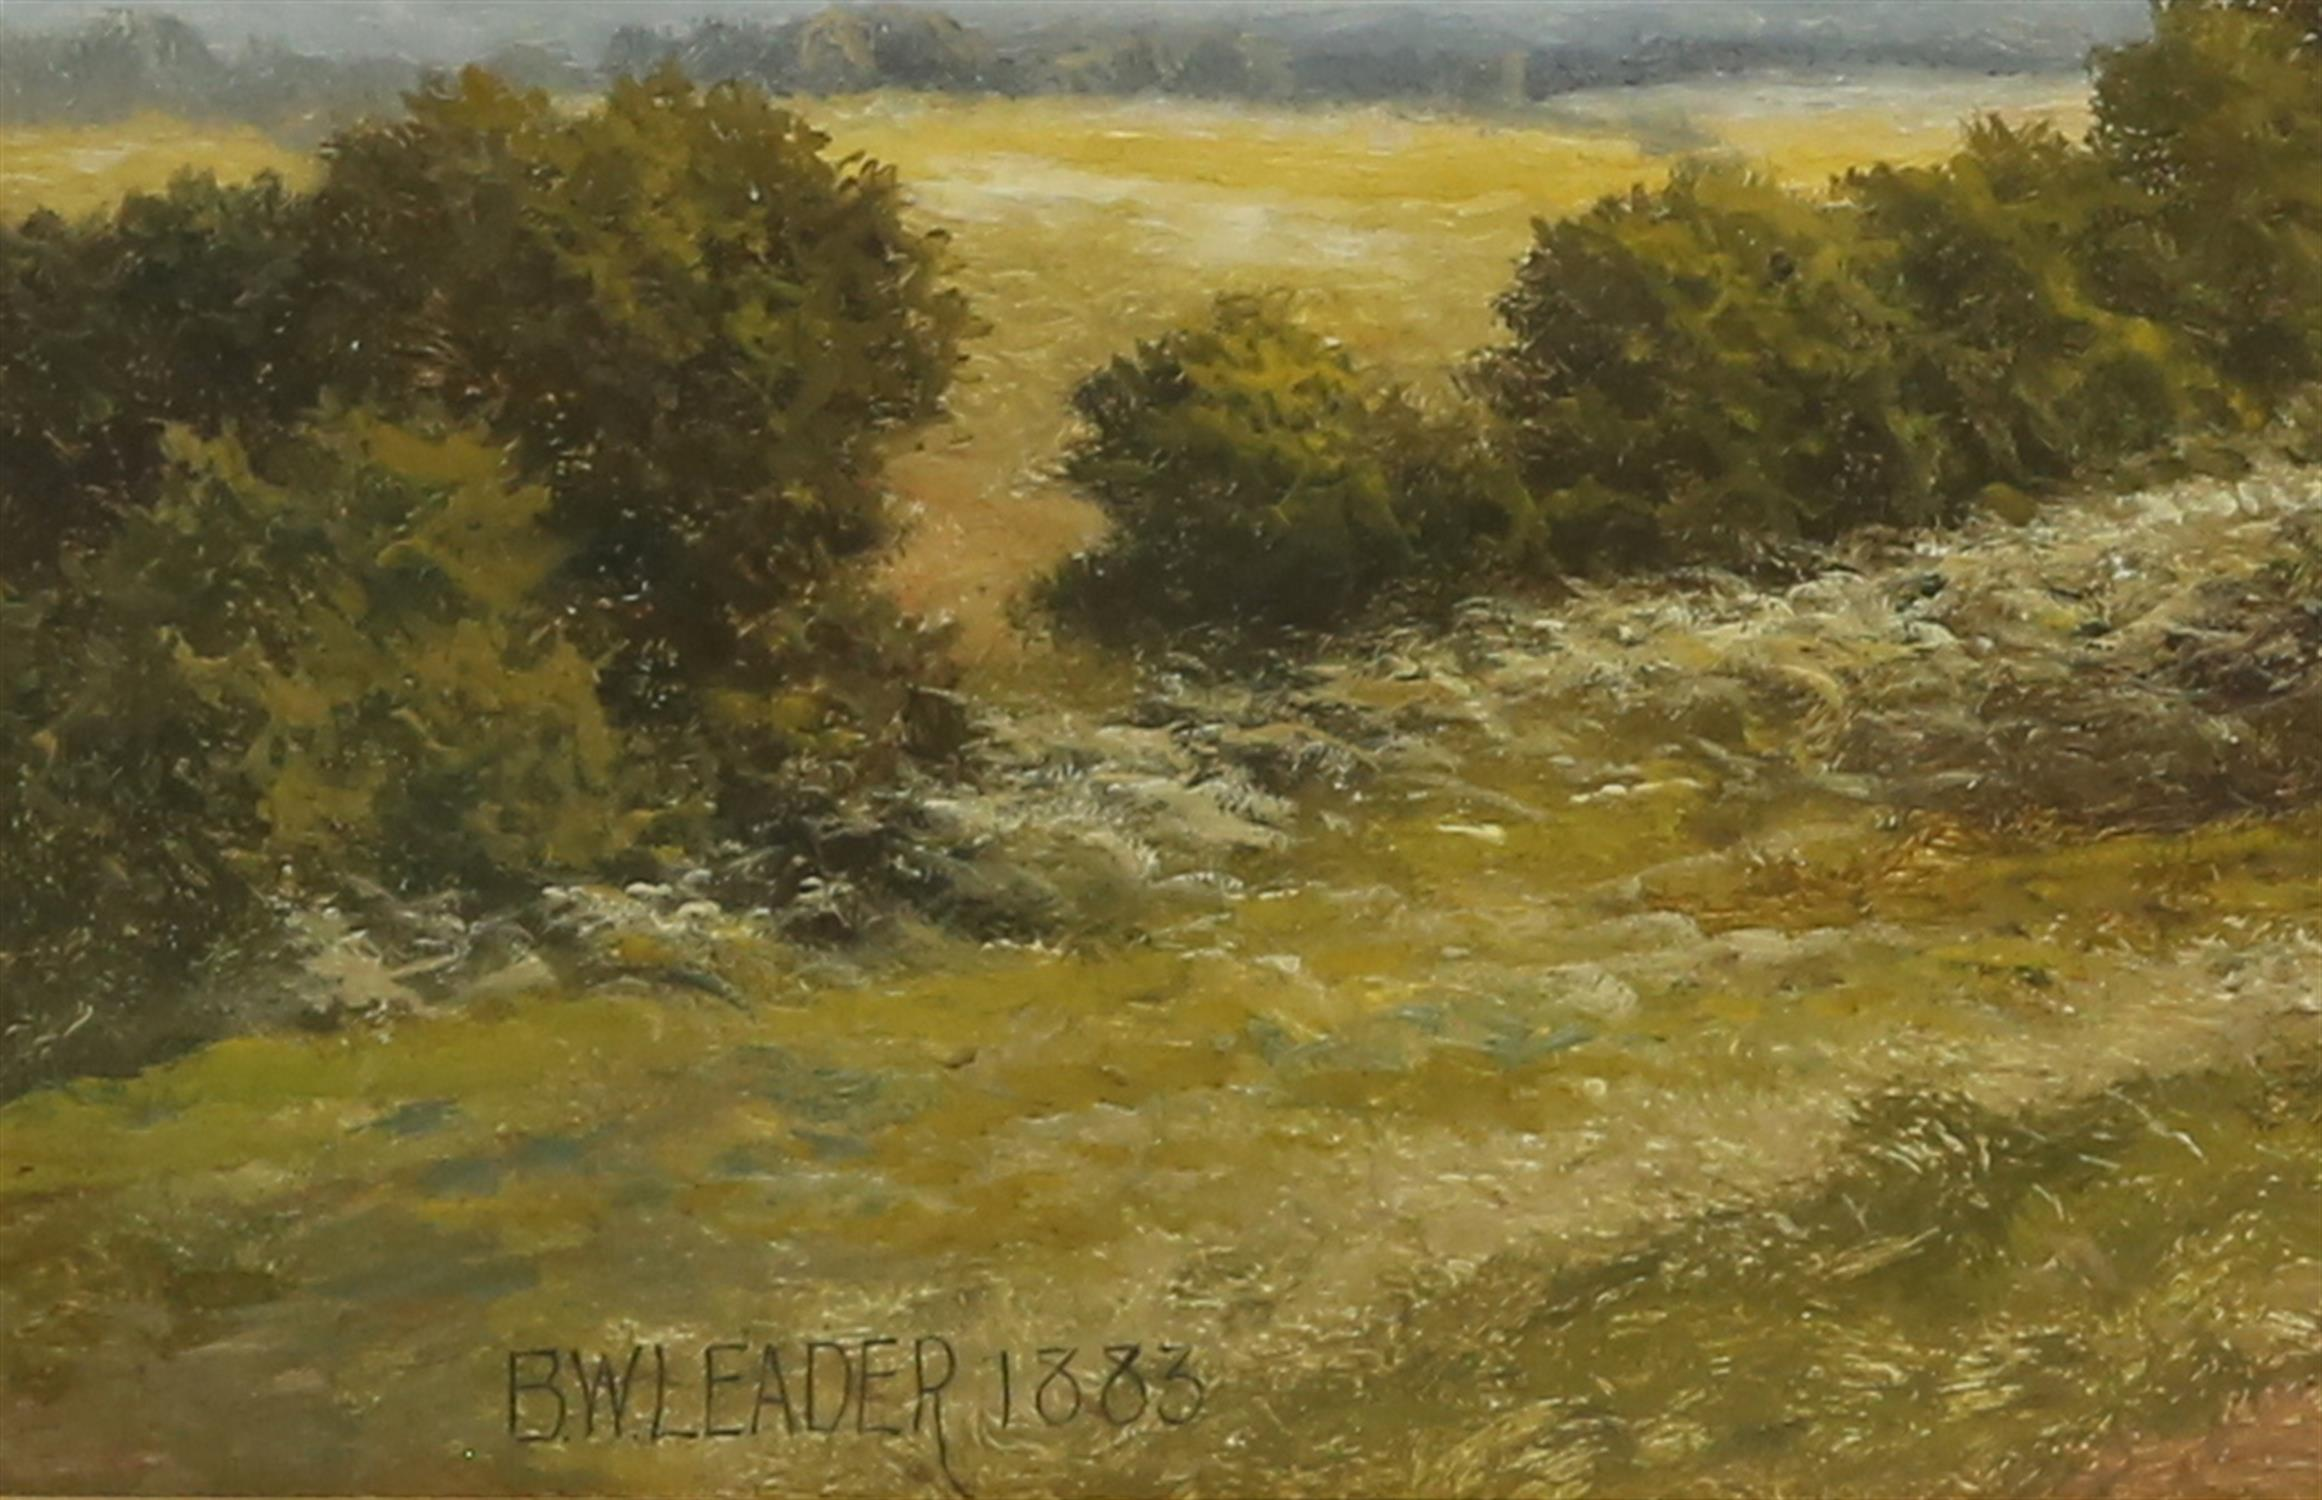 Benjamin Williams Leader RA (1831-1923), 'Blean Common, Kent', oil on canvas, signed and dated 1883 - Image 3 of 5